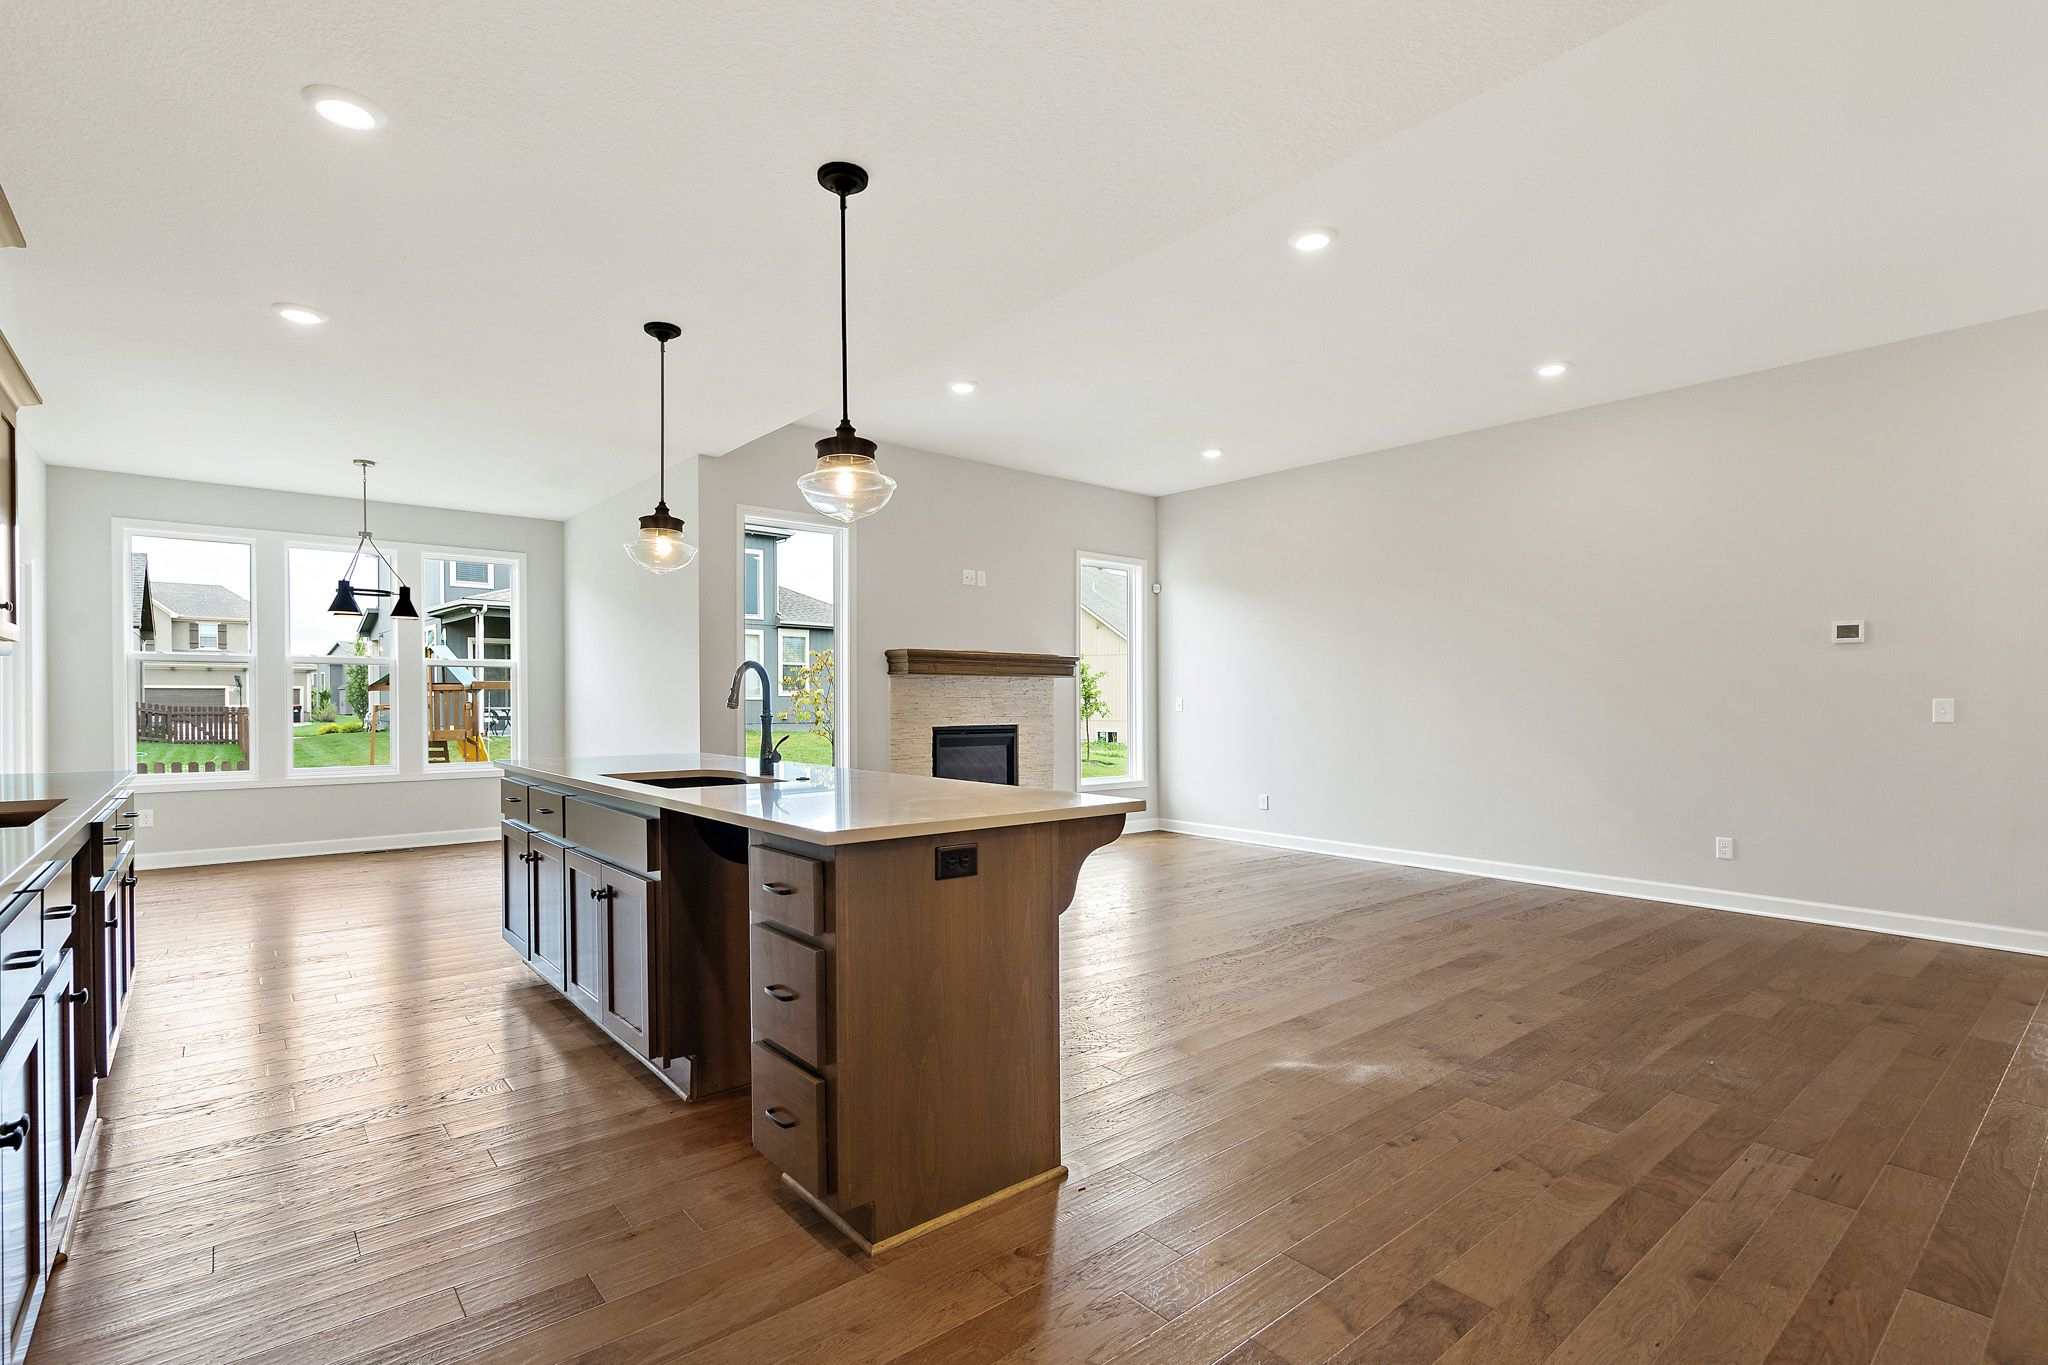 Kitchen featured in the Linden By Summit Homes in Kansas City, MO